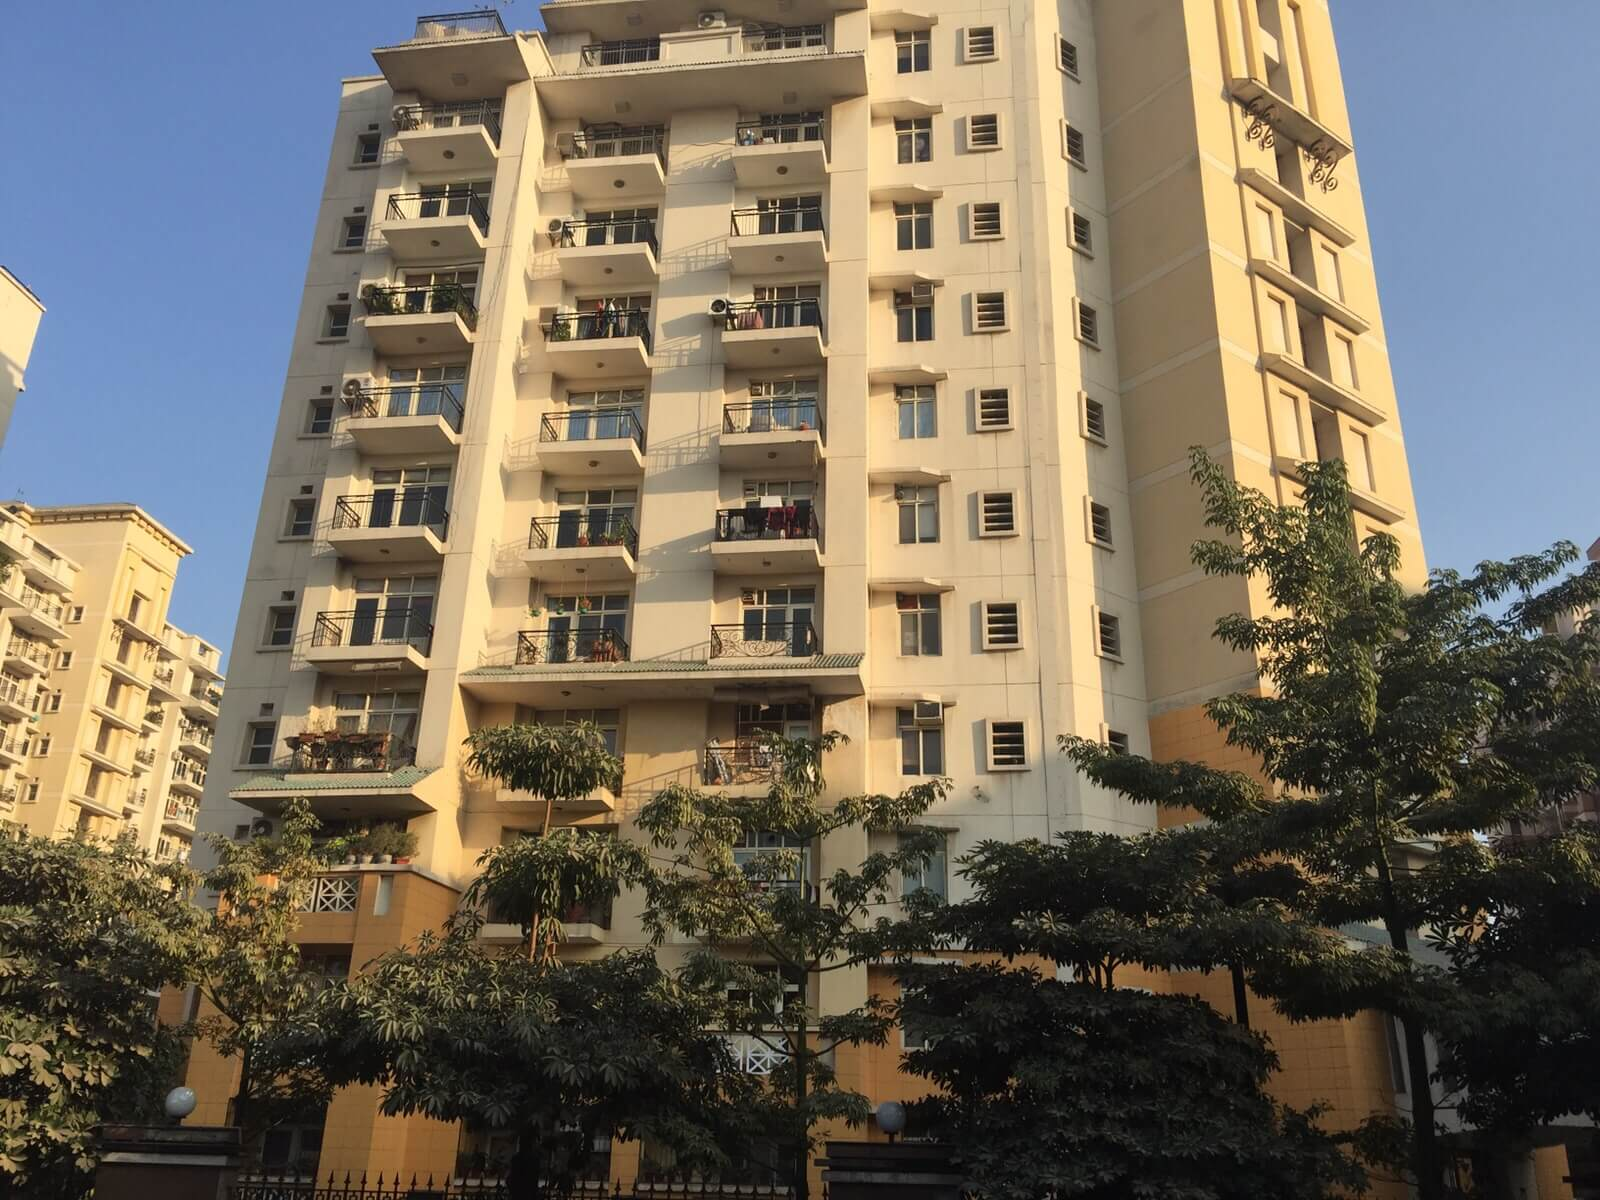 4 BHK Residential Apartment for rent in Sector 54 Gurgaon